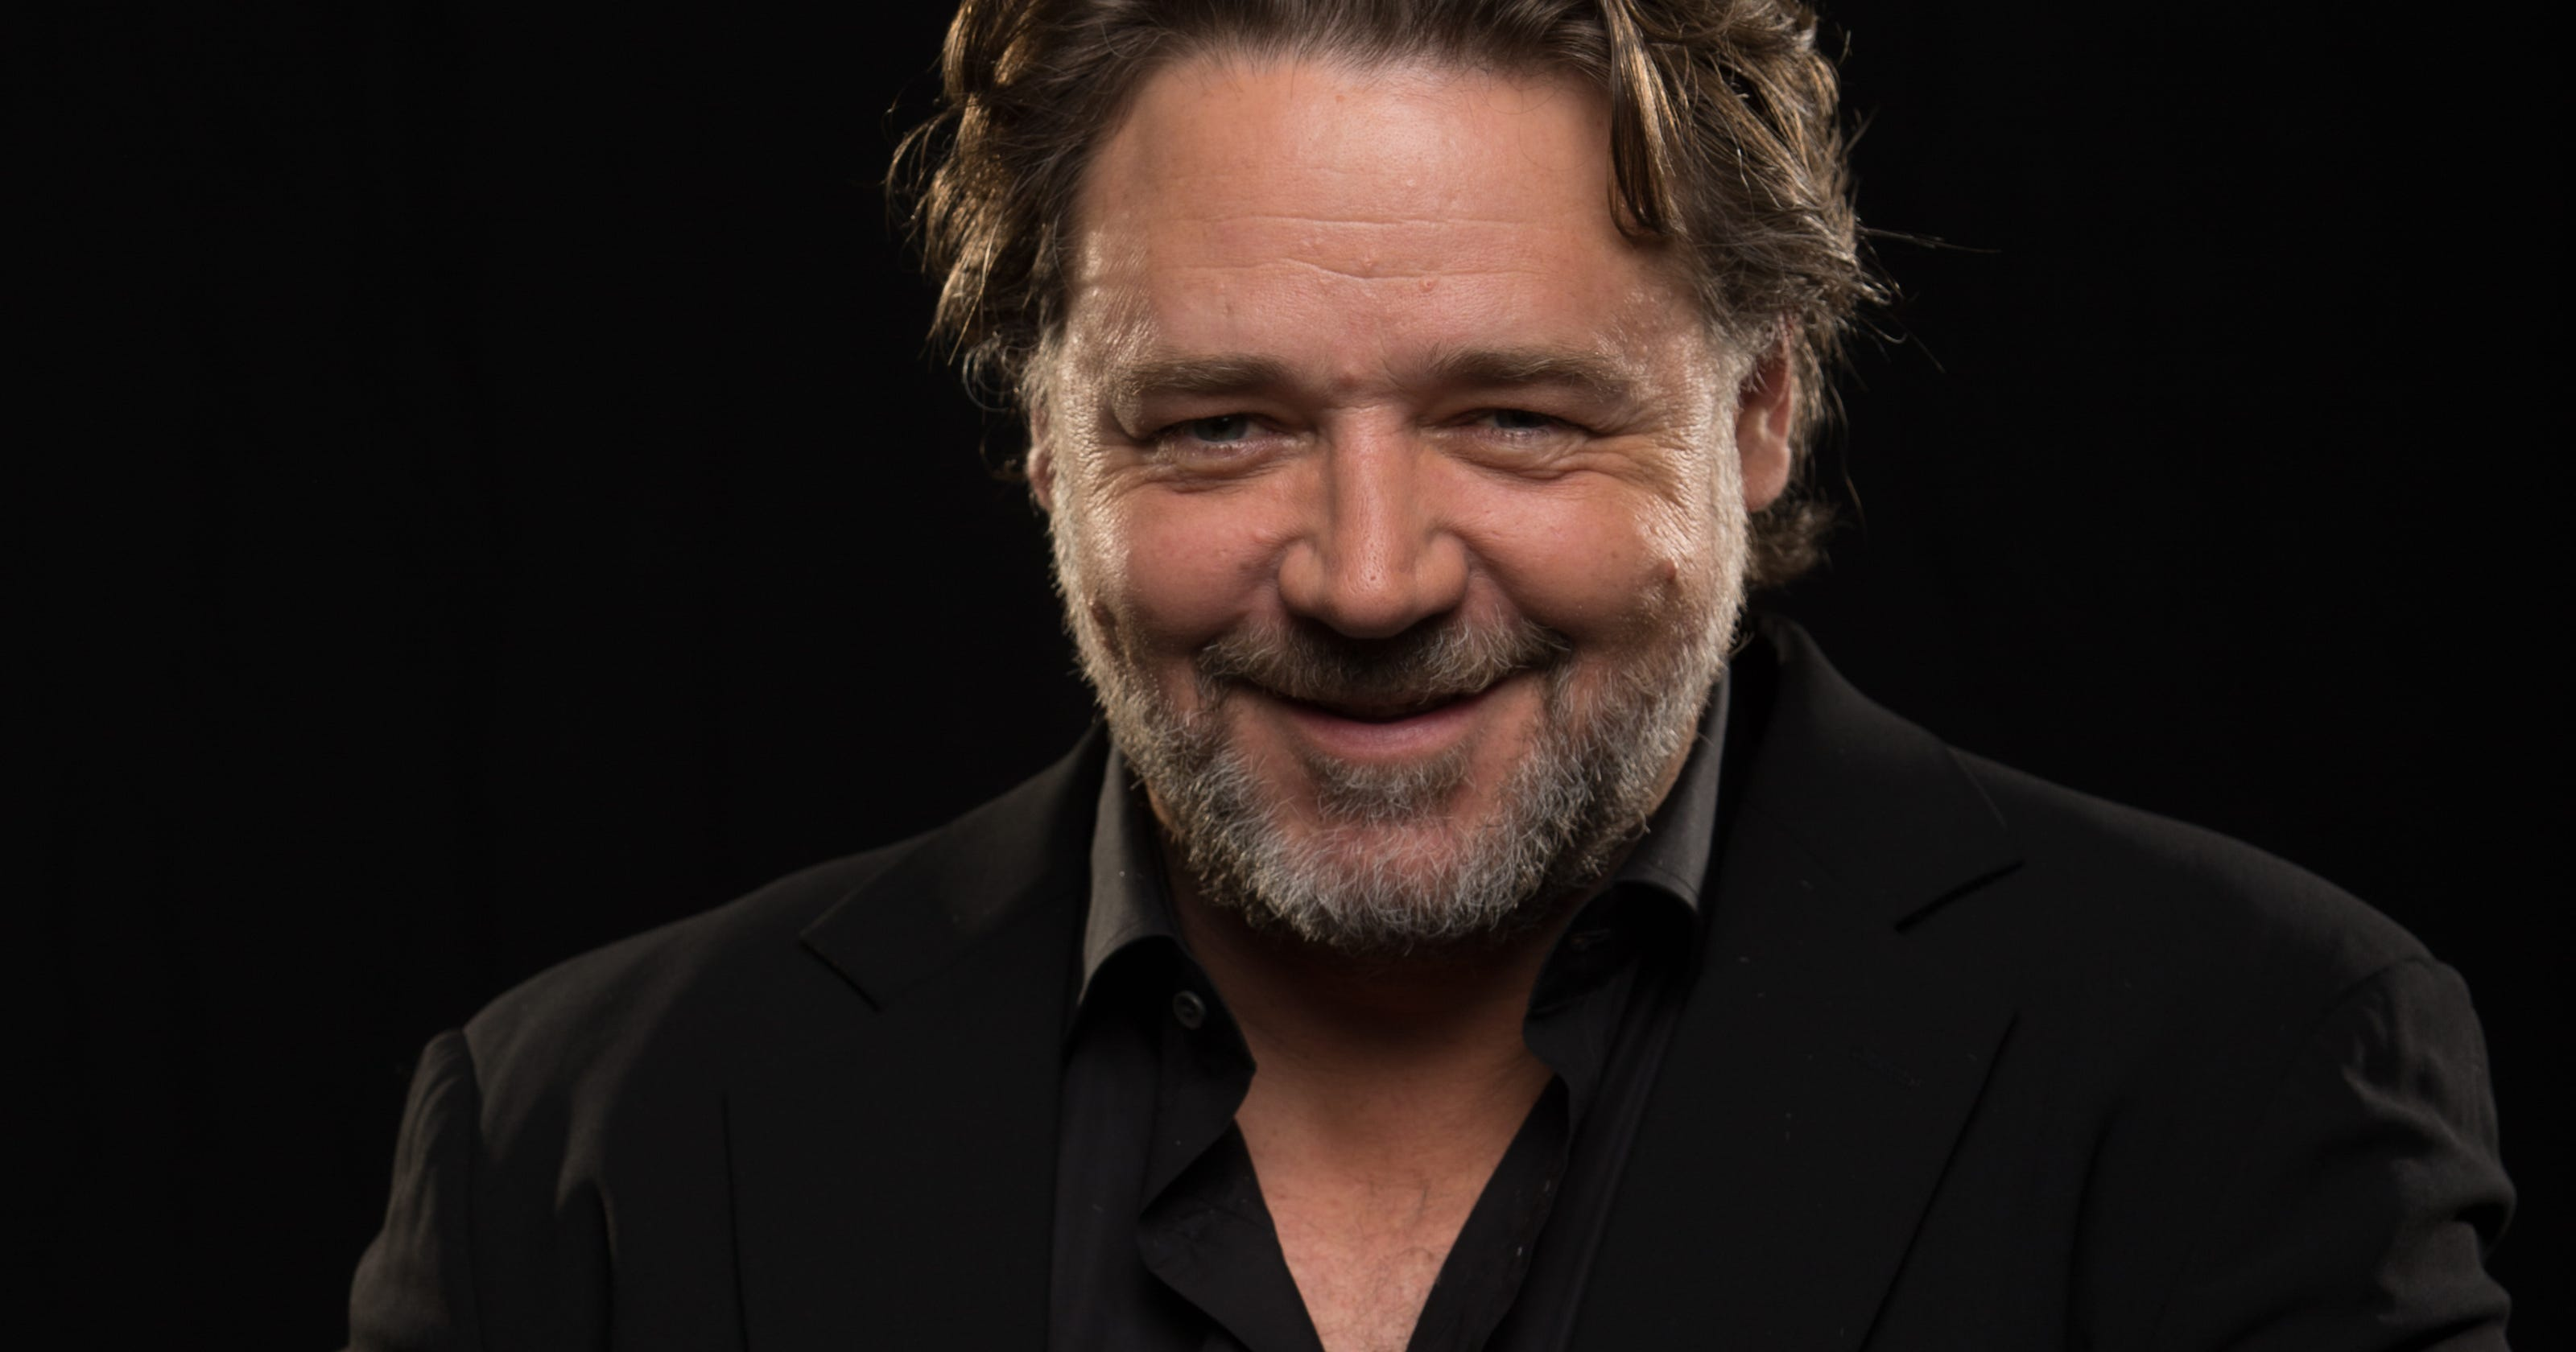 Russell Crowe tries out comedy, Al Sharpton guests on 'SNL'